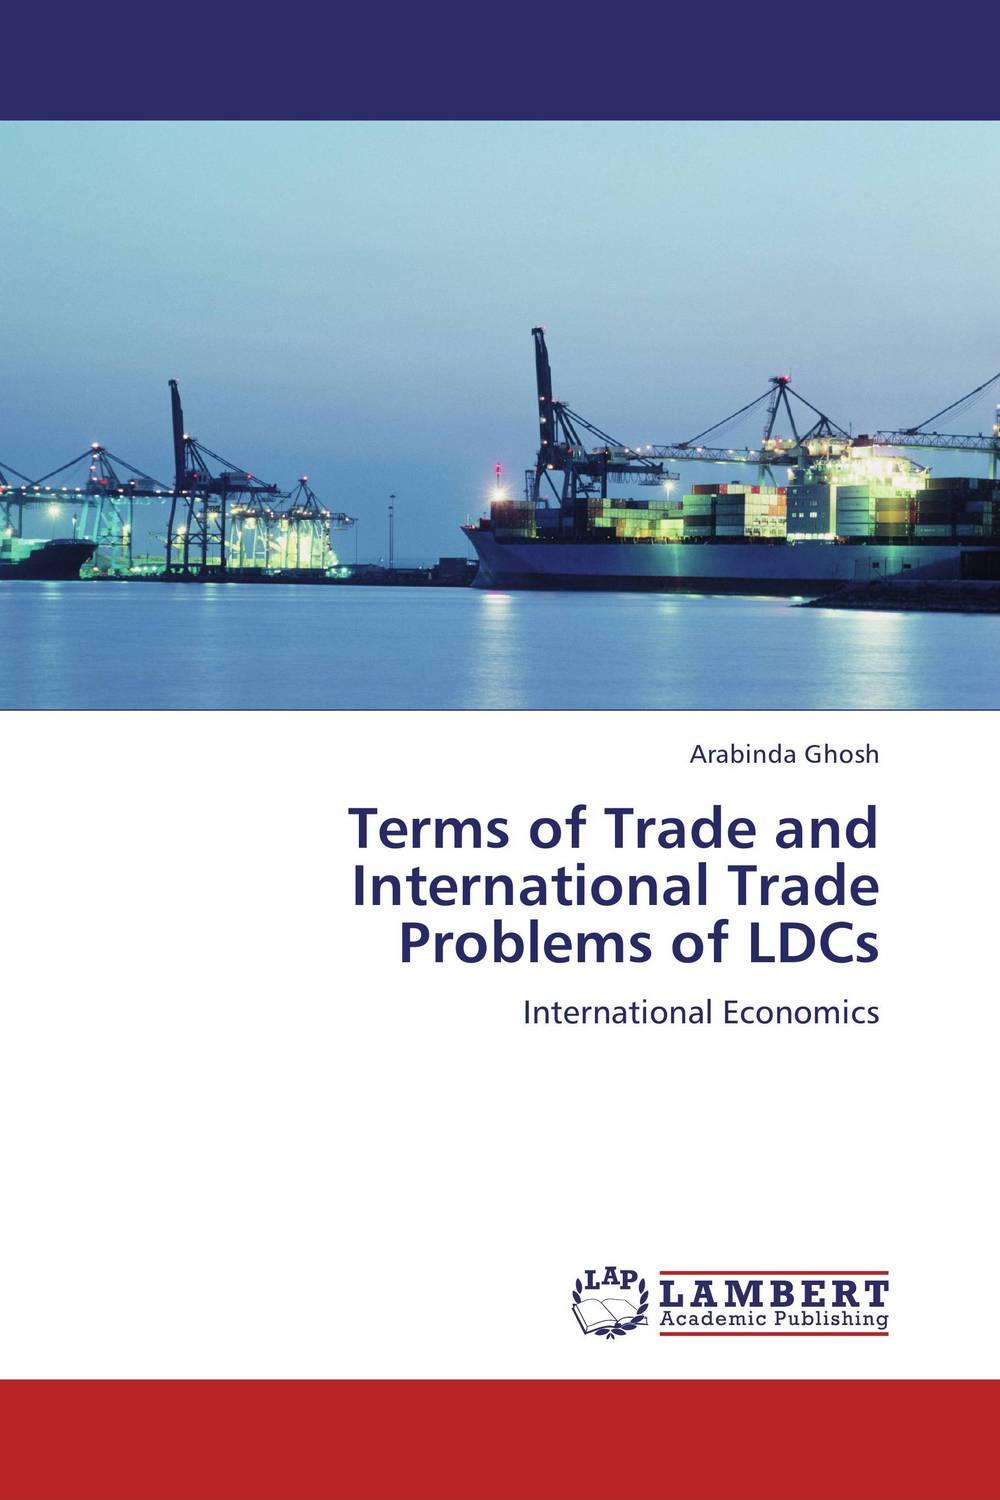 Terms of Trade and International Trade Problems of LDCs i manev social capital and strategy effectiveness an empirical study of entrepreneurial ventures in a transition economy